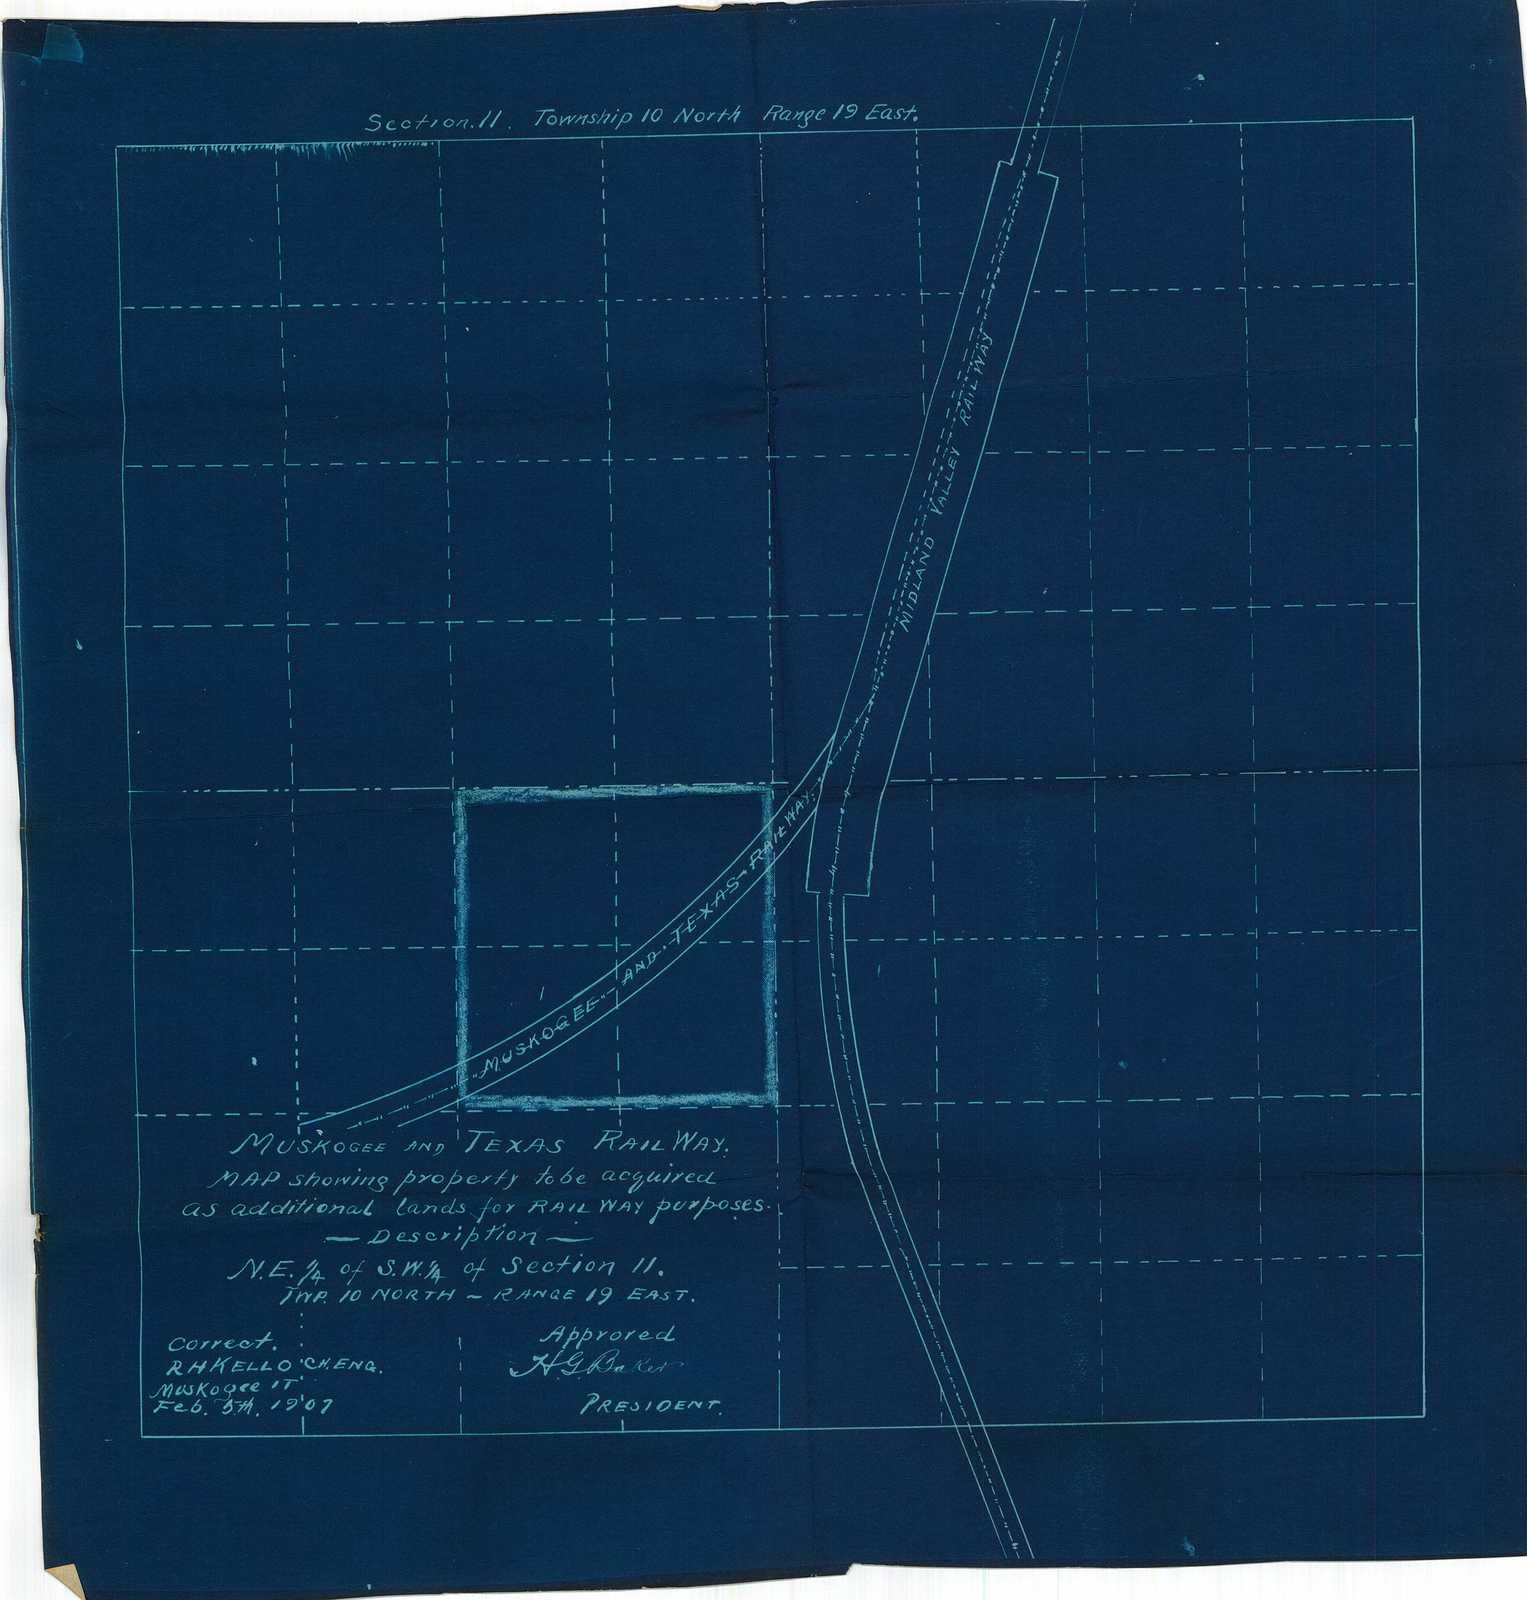 Muskogee and Texas Railway, Map Showing Property to be Acquired as Additional Lands for Railway Purposes, Description N.E. 1/4 of S.W. 1/4 of S.W. 1/4 of Section 11. Twp. 10 North, Range 19 East